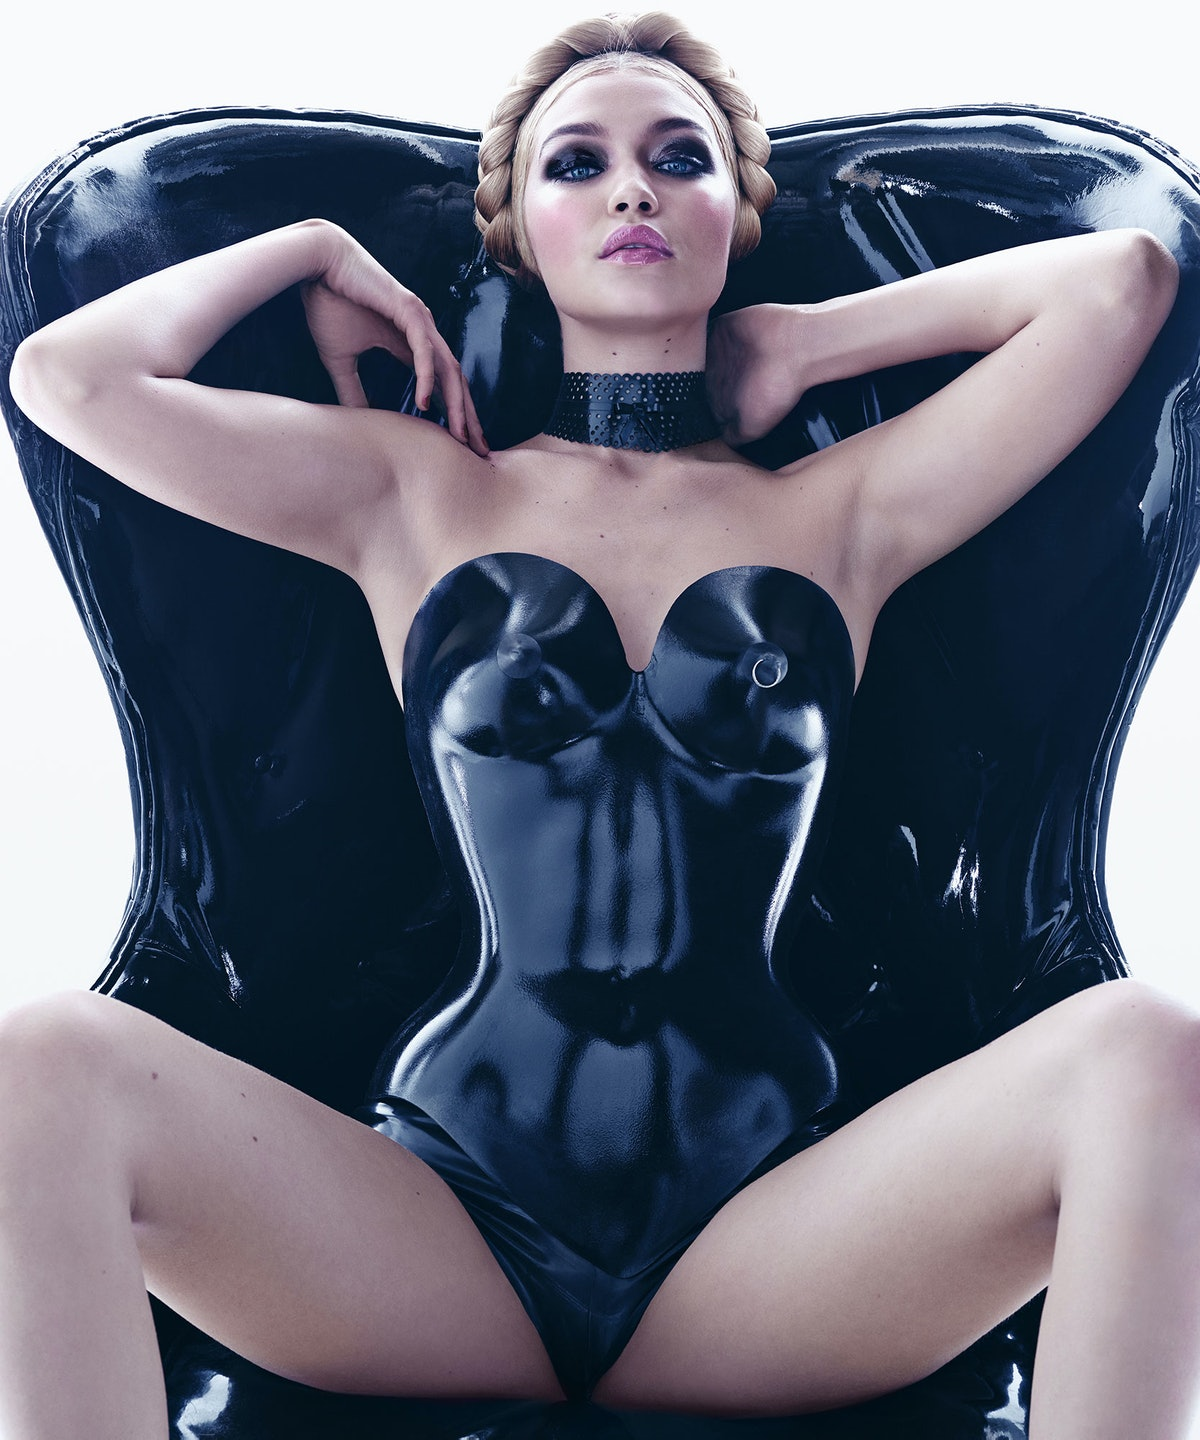 Gigi Hadid photographed by Steven Meisel, styled by Carine Roitfeld for the 2015 Pirelli Calendar